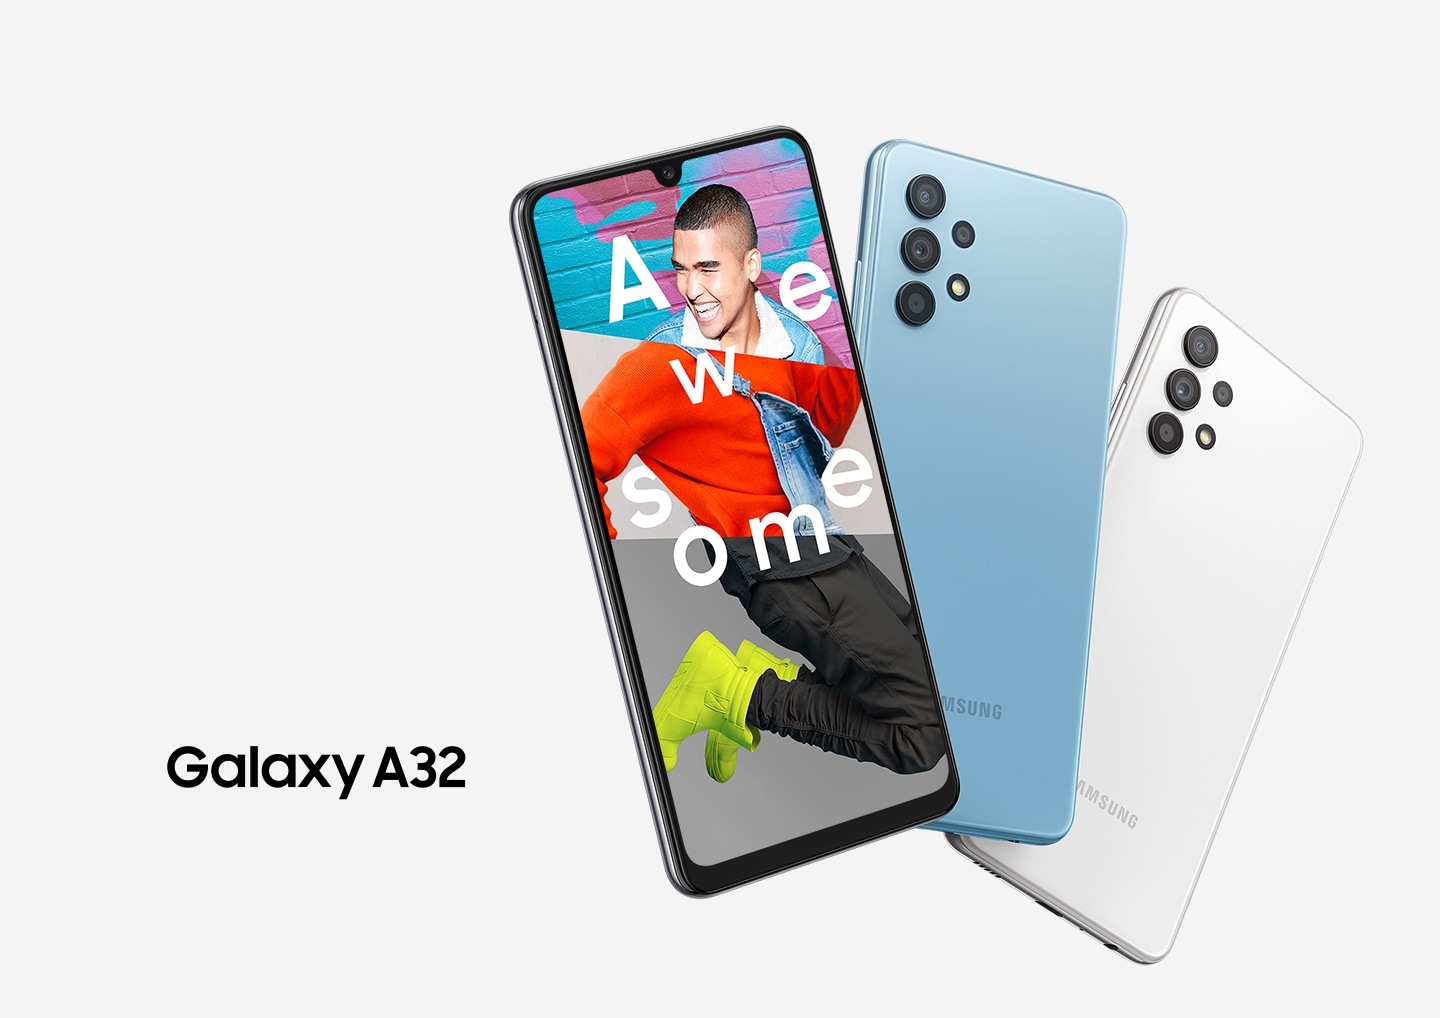 Galaxy A32 Key visual comes out in three devices with its official logo on the side. On the screen, an excited young man hop on where he is standing, surrounding the text of `Awesome` on him.